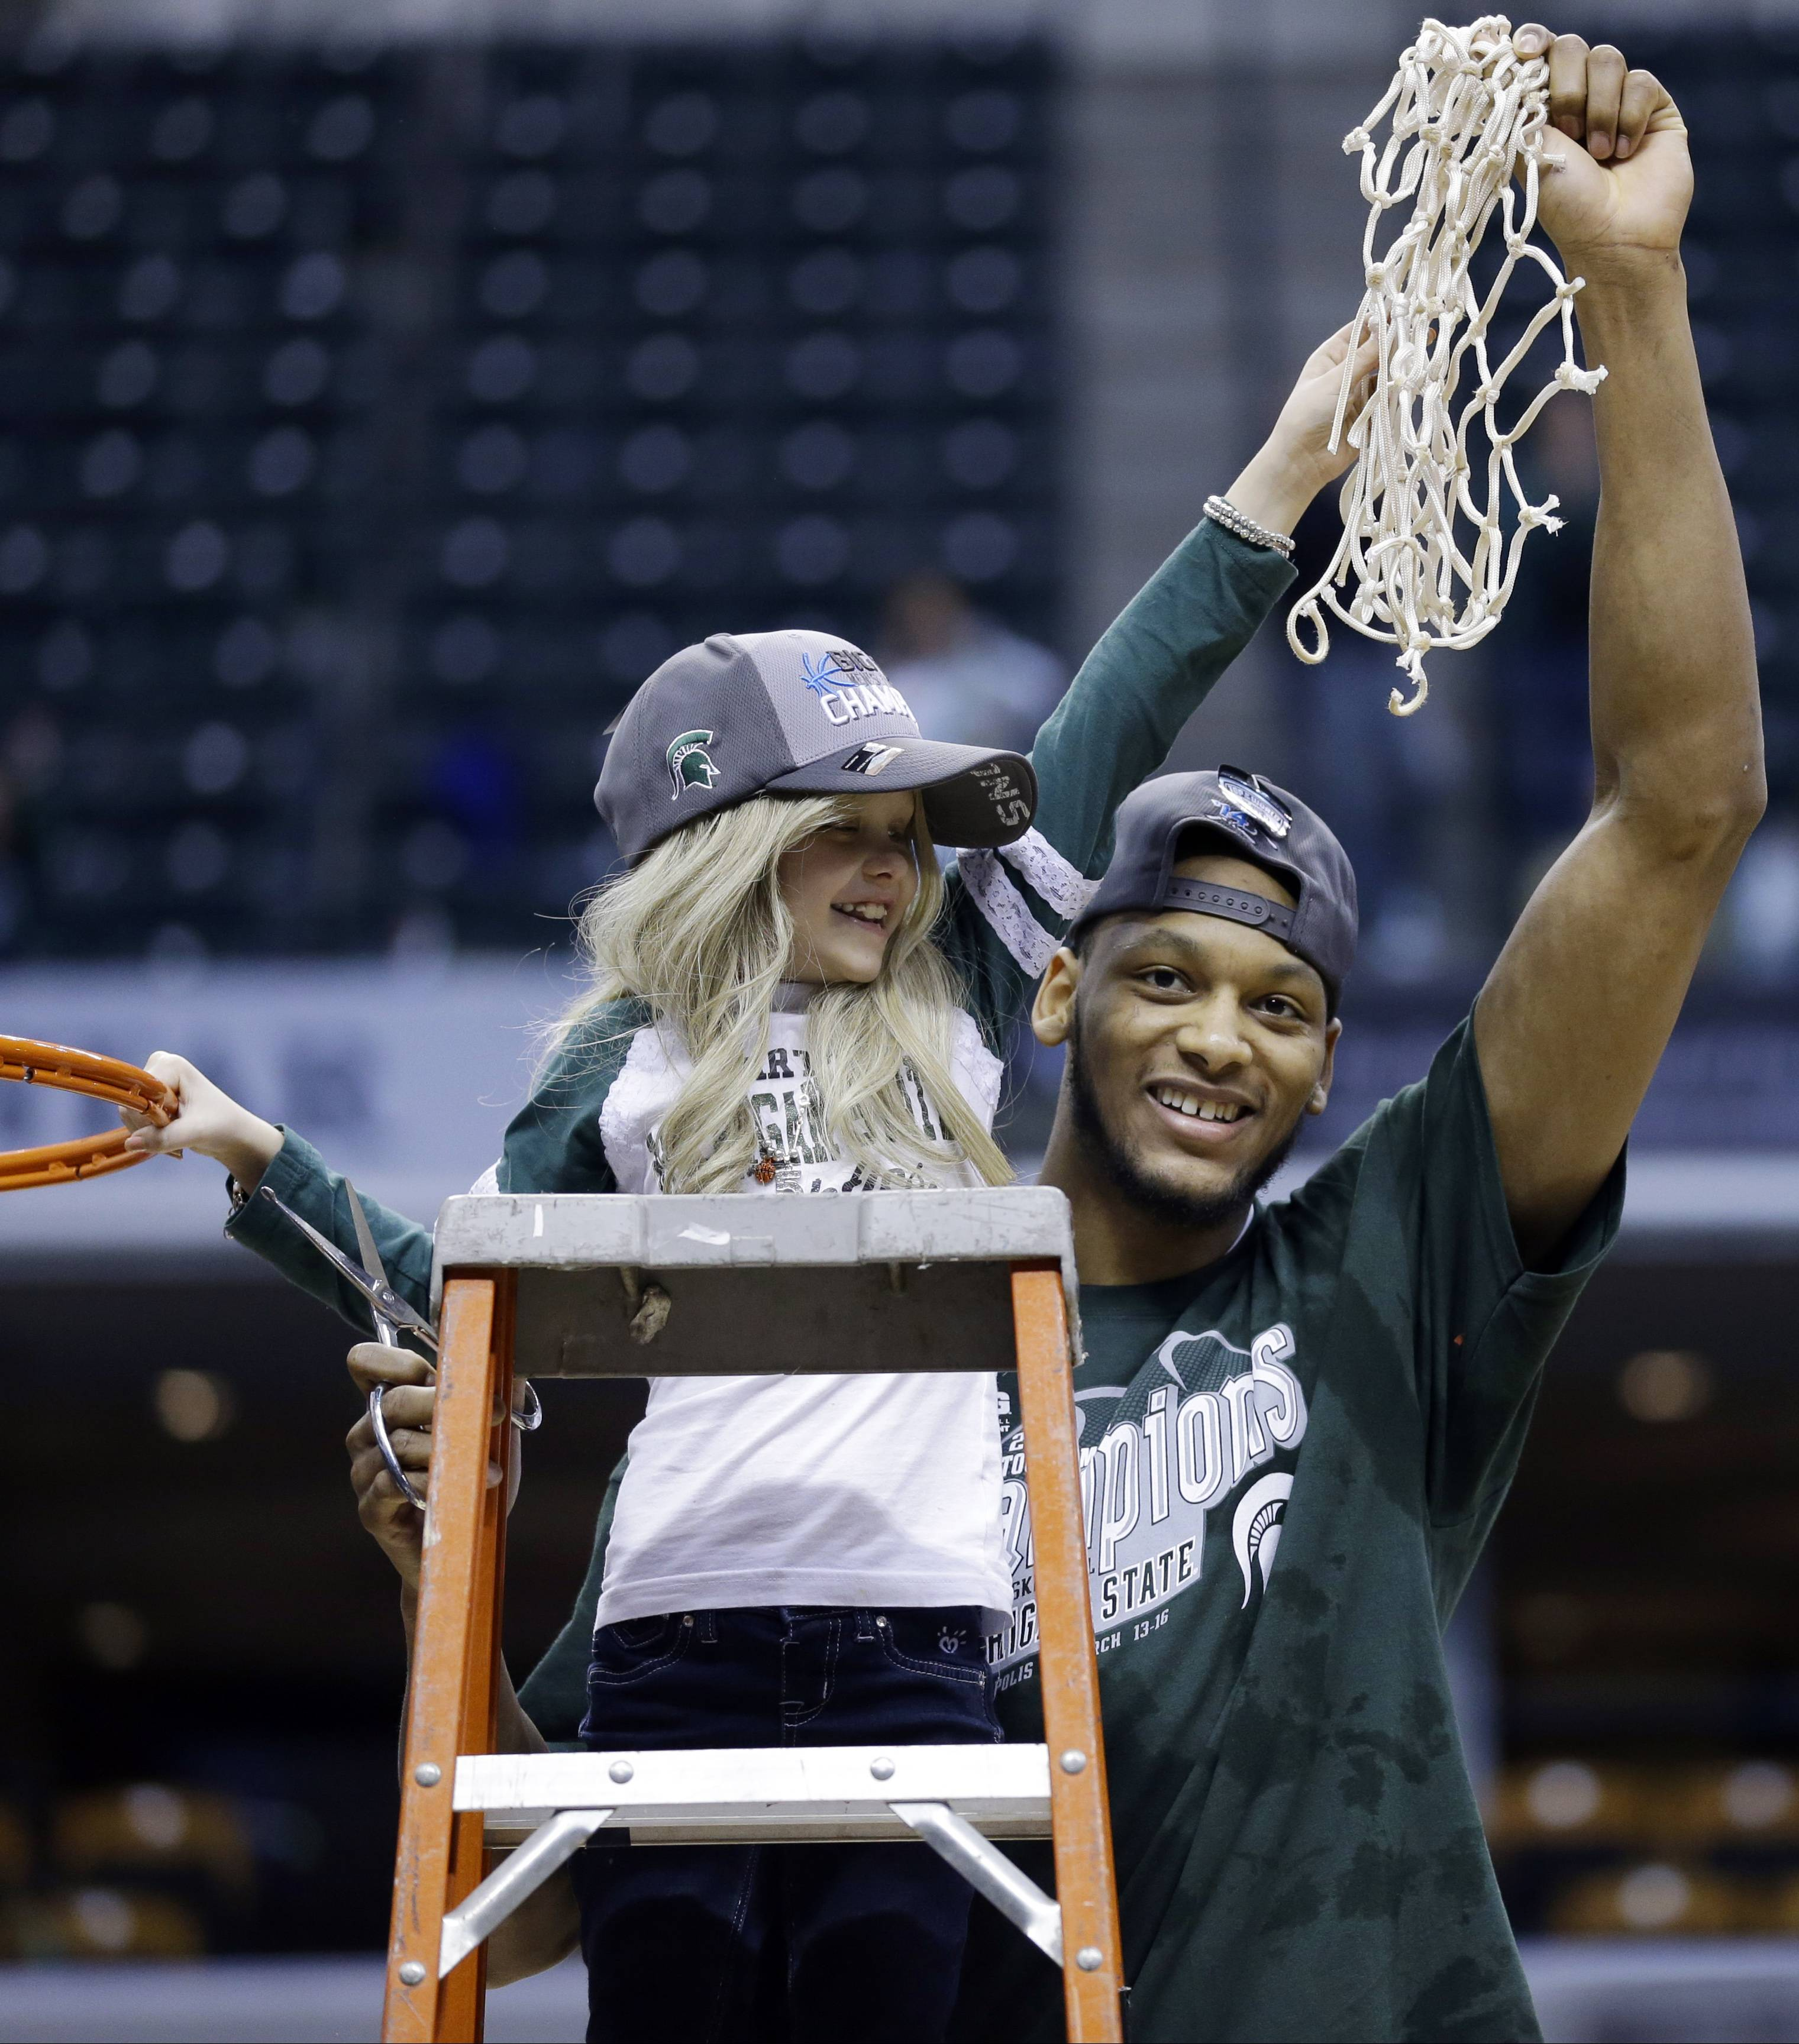 Michigan State forward Adreian Payne, right, hoists the net with Lacey Holsworth, who lost her battle with cancer this past week.